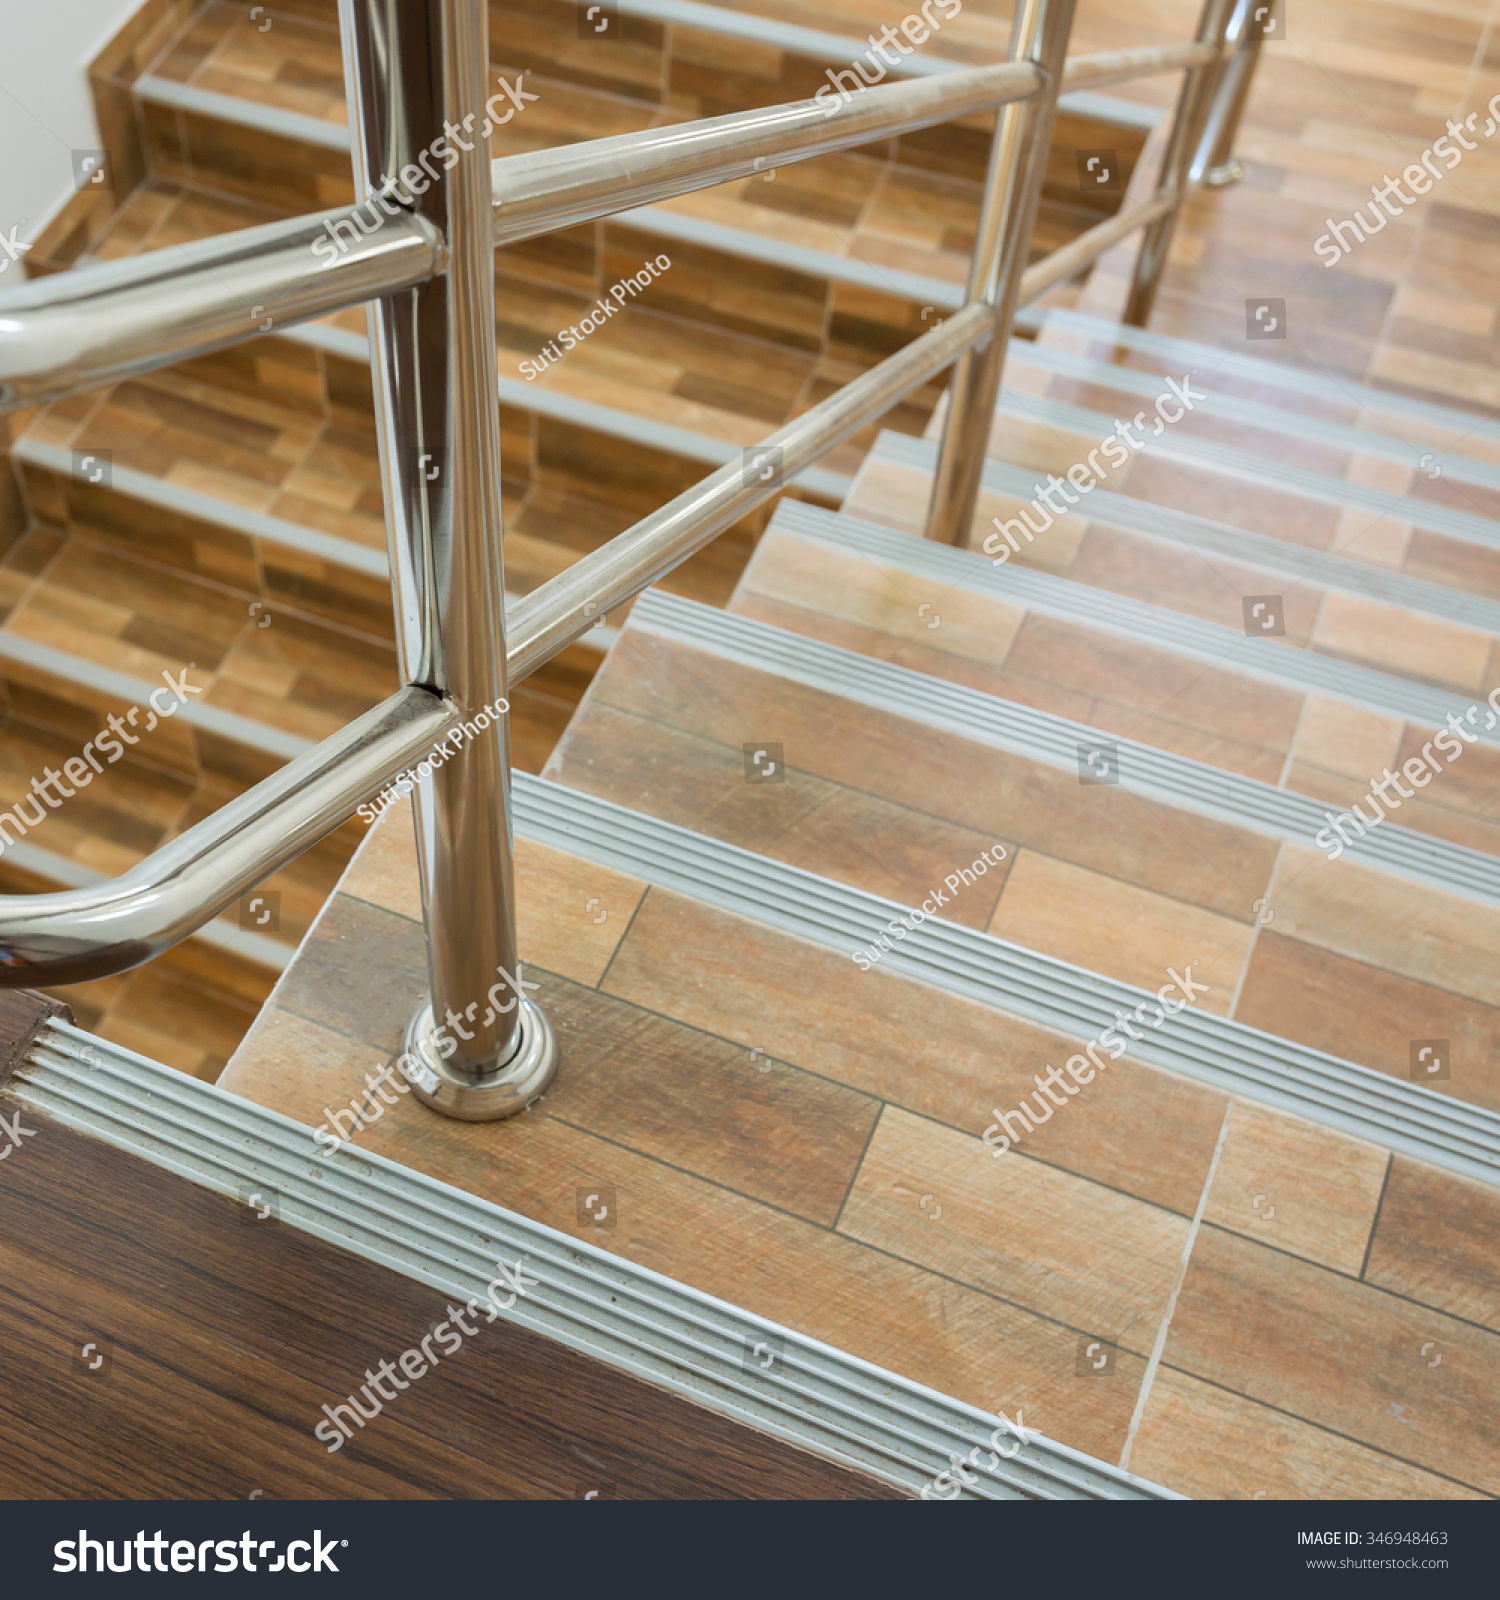 Staircase residential house stainless steel banister stock photo staircase in residential house with stainless steel banister ceramic floor tiles wood pattern dailygadgetfo Image collections